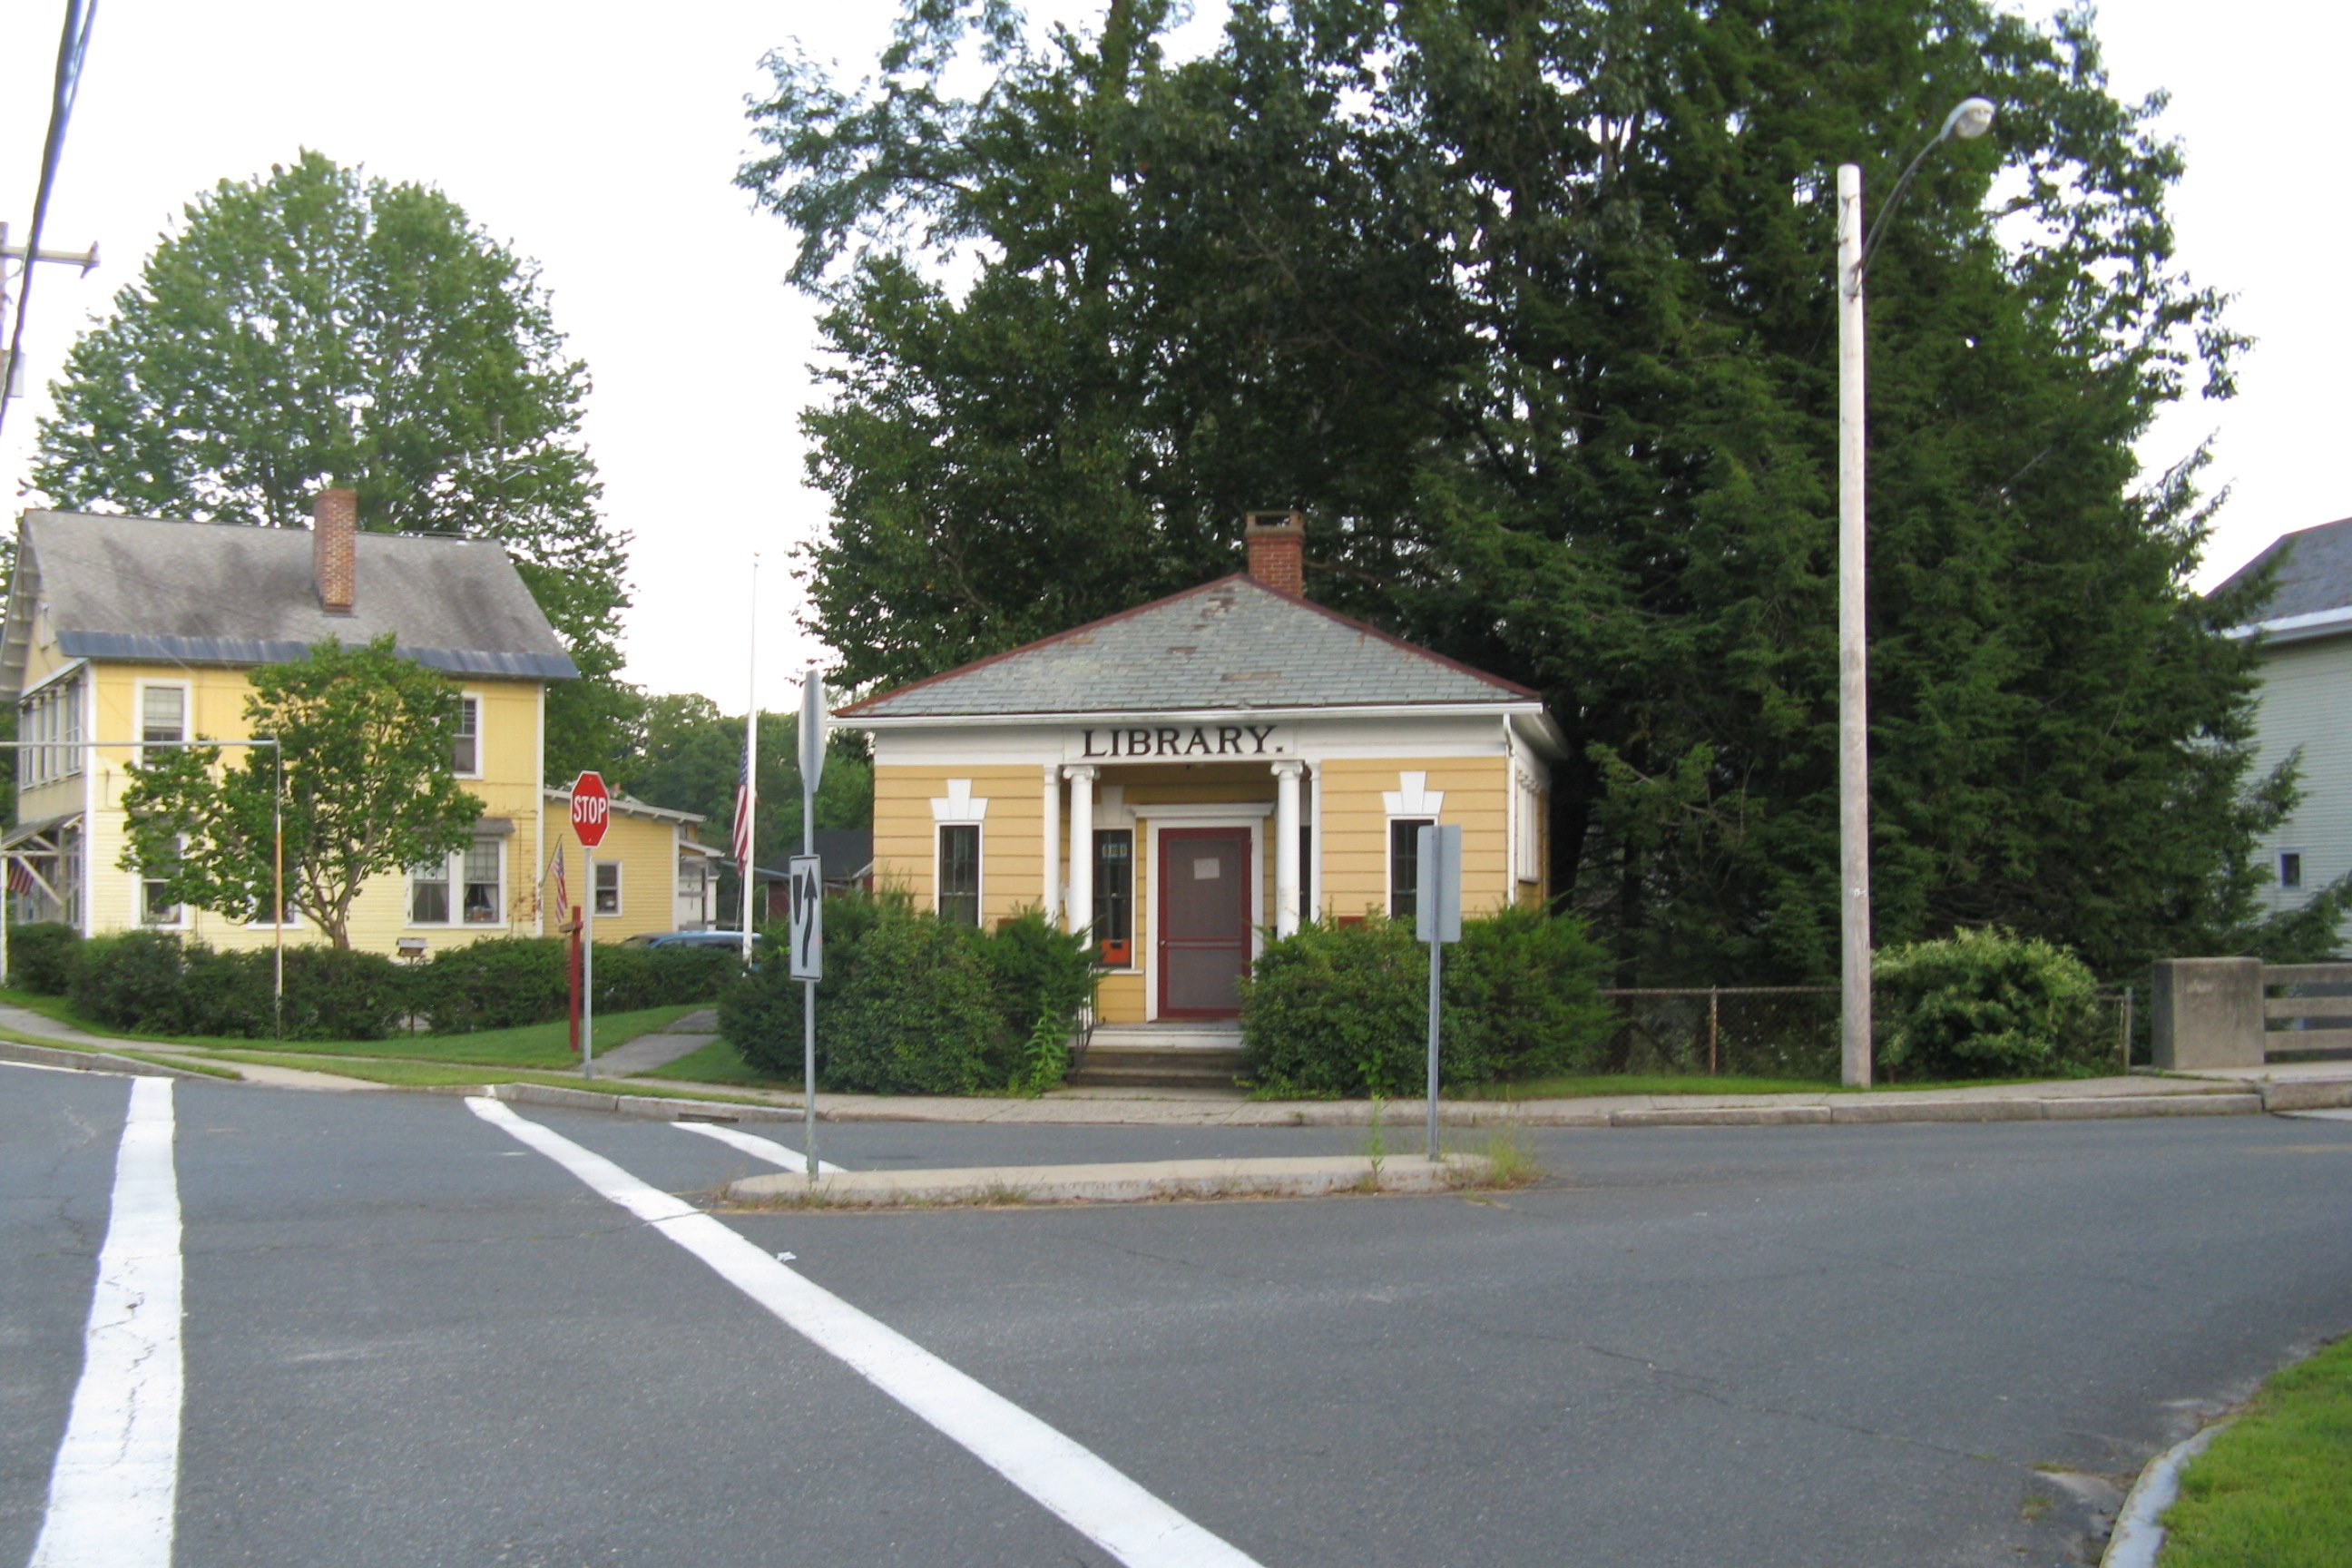 File:Library, Haydenville MA.jpg